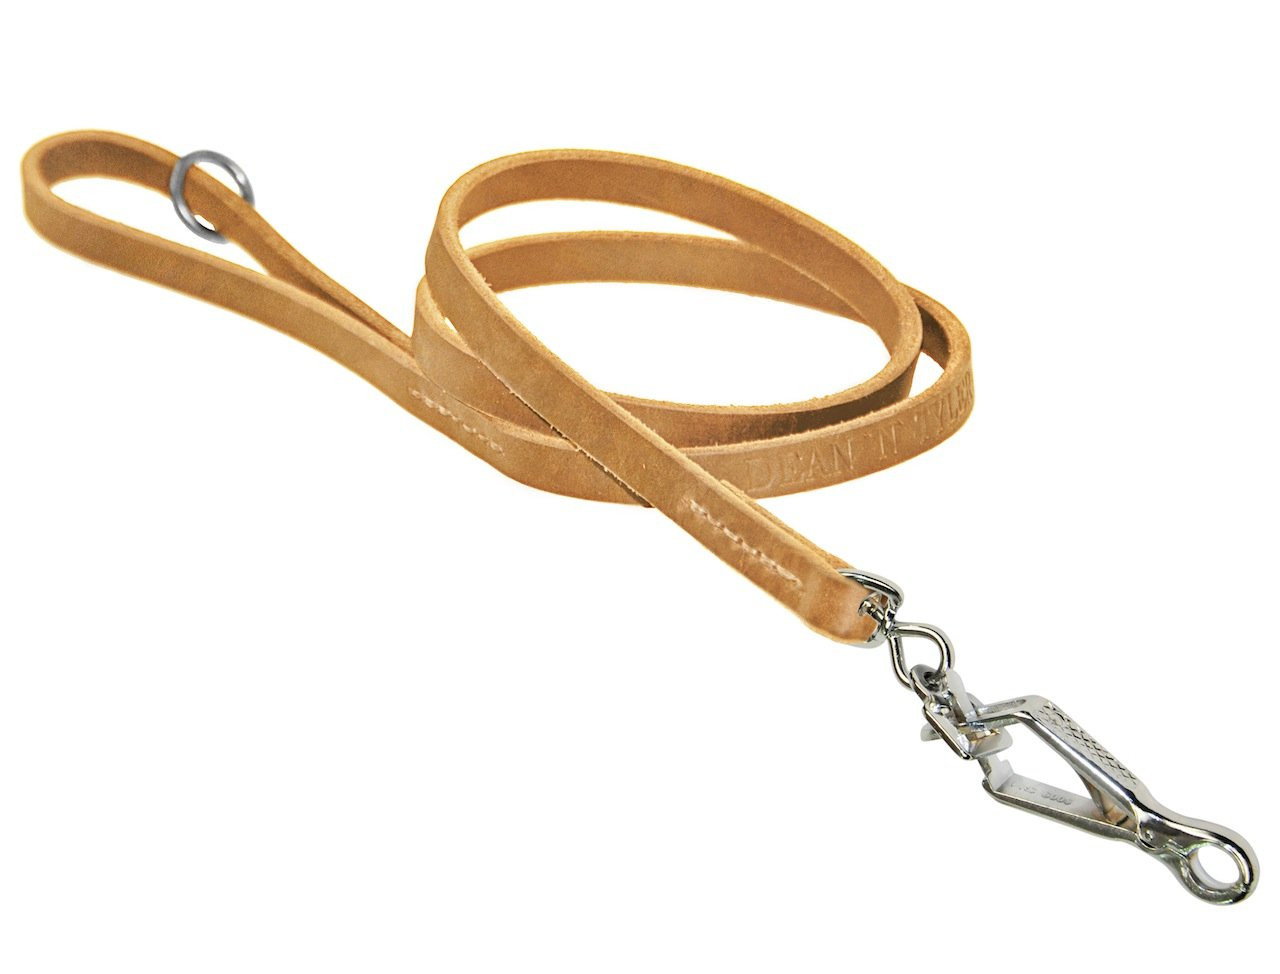 Dean & Tyler Tan No Nonsense Sprenger Snap Leash with Ring on Handle, 3-Feet by 1 2-Inch